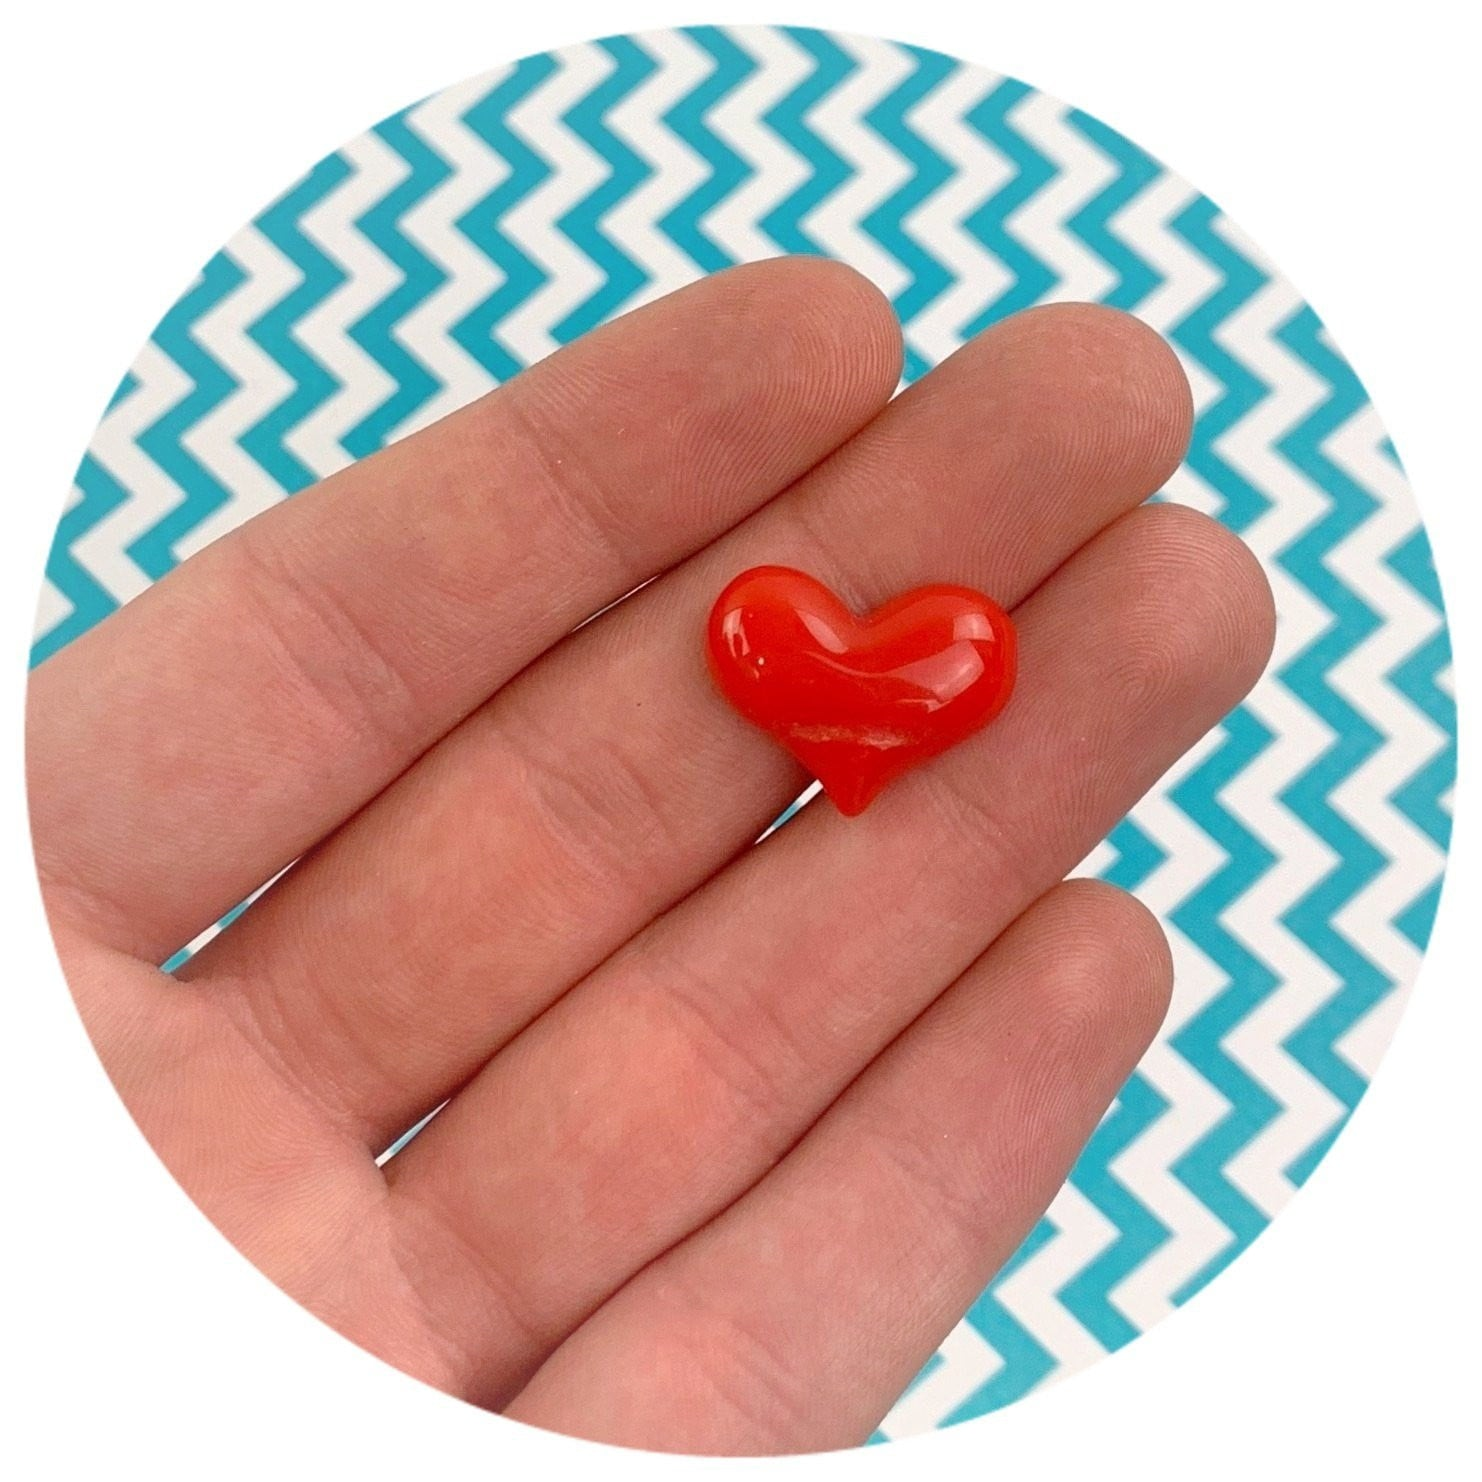 Red Heart Charm - Fimo Slices - Dope Slimes LLC - Dope Slimes LLC